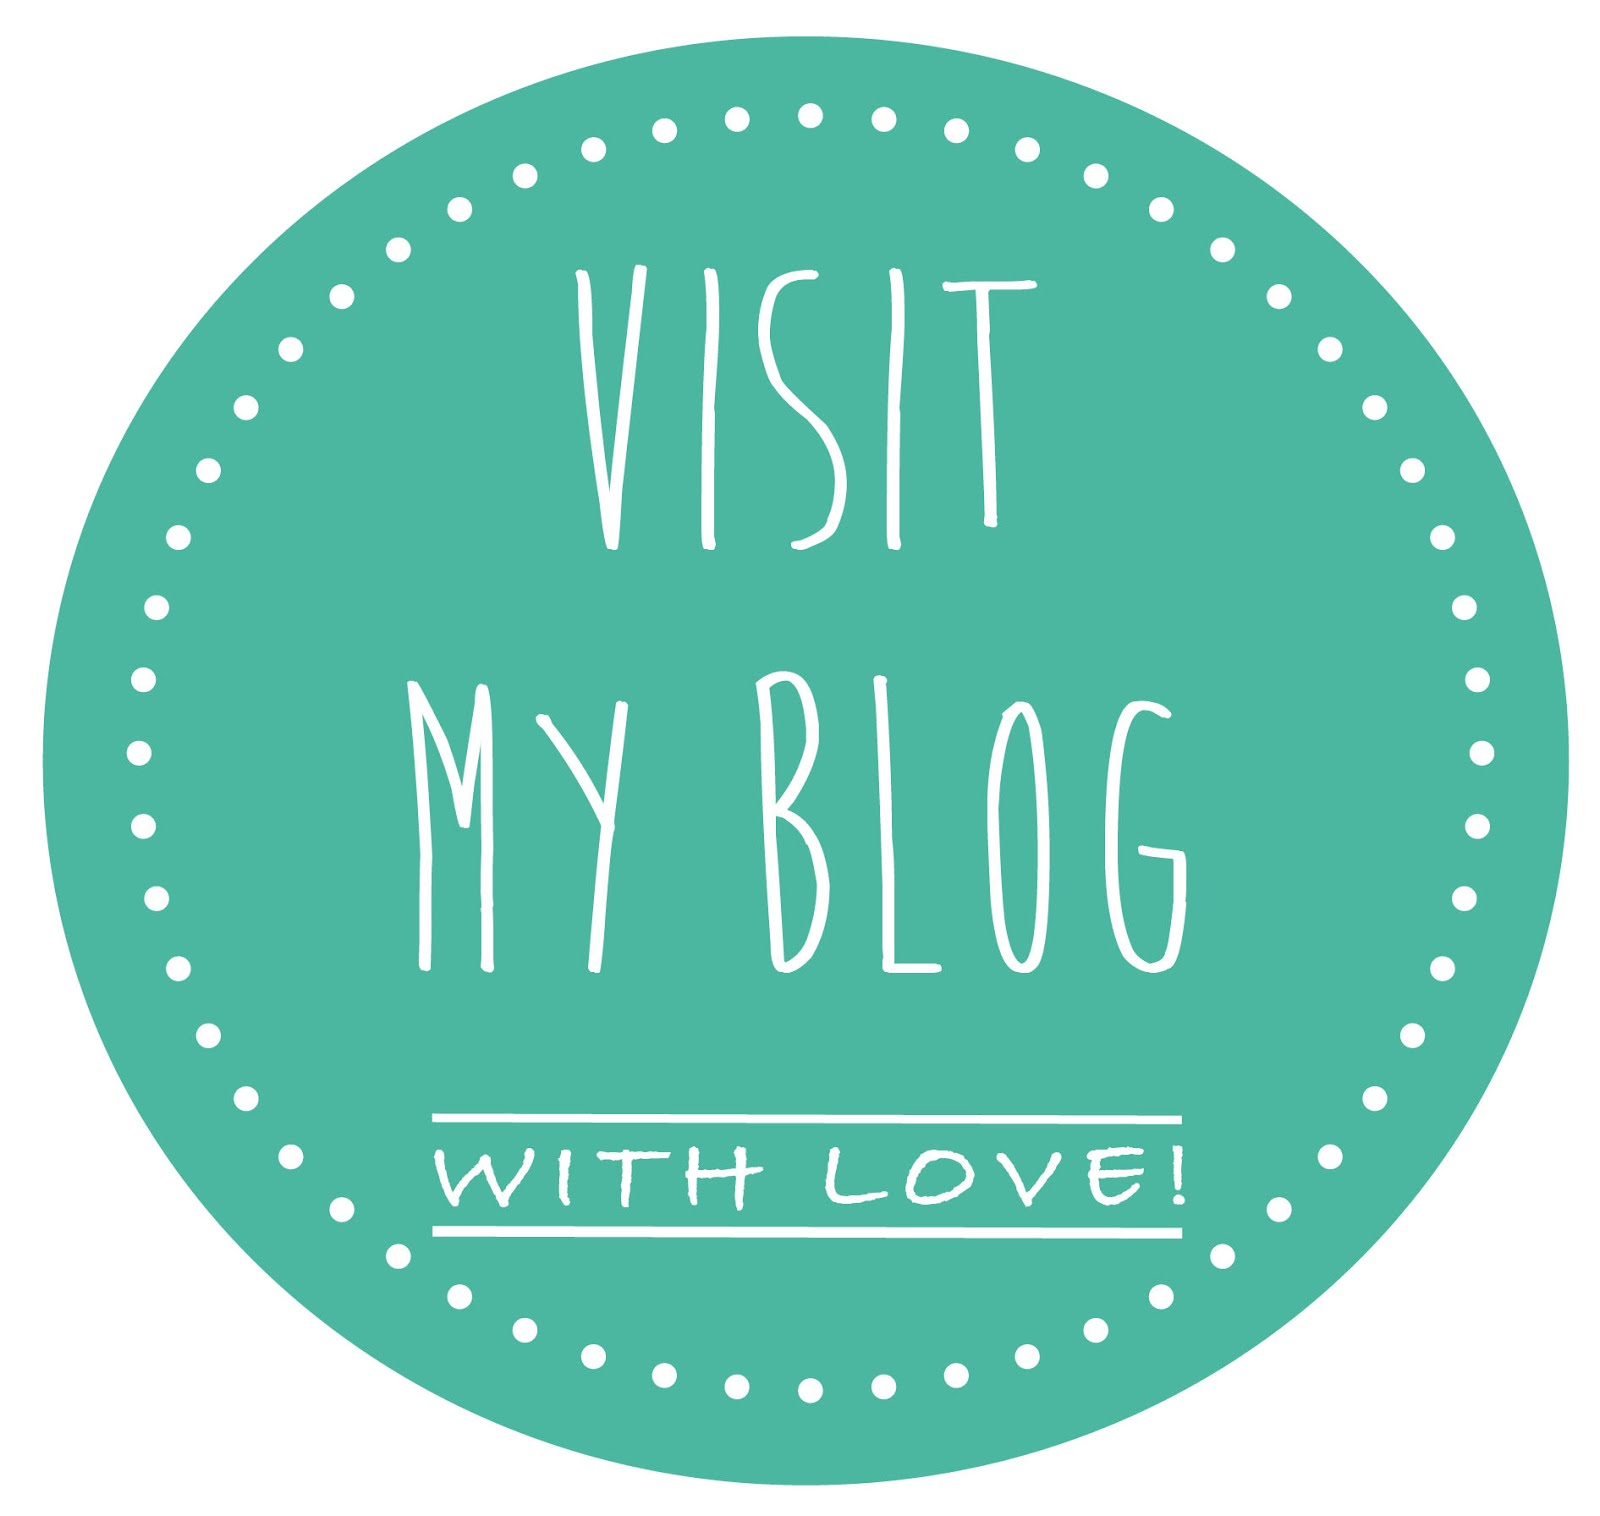 VISIT MY ANOTHER BLOG!